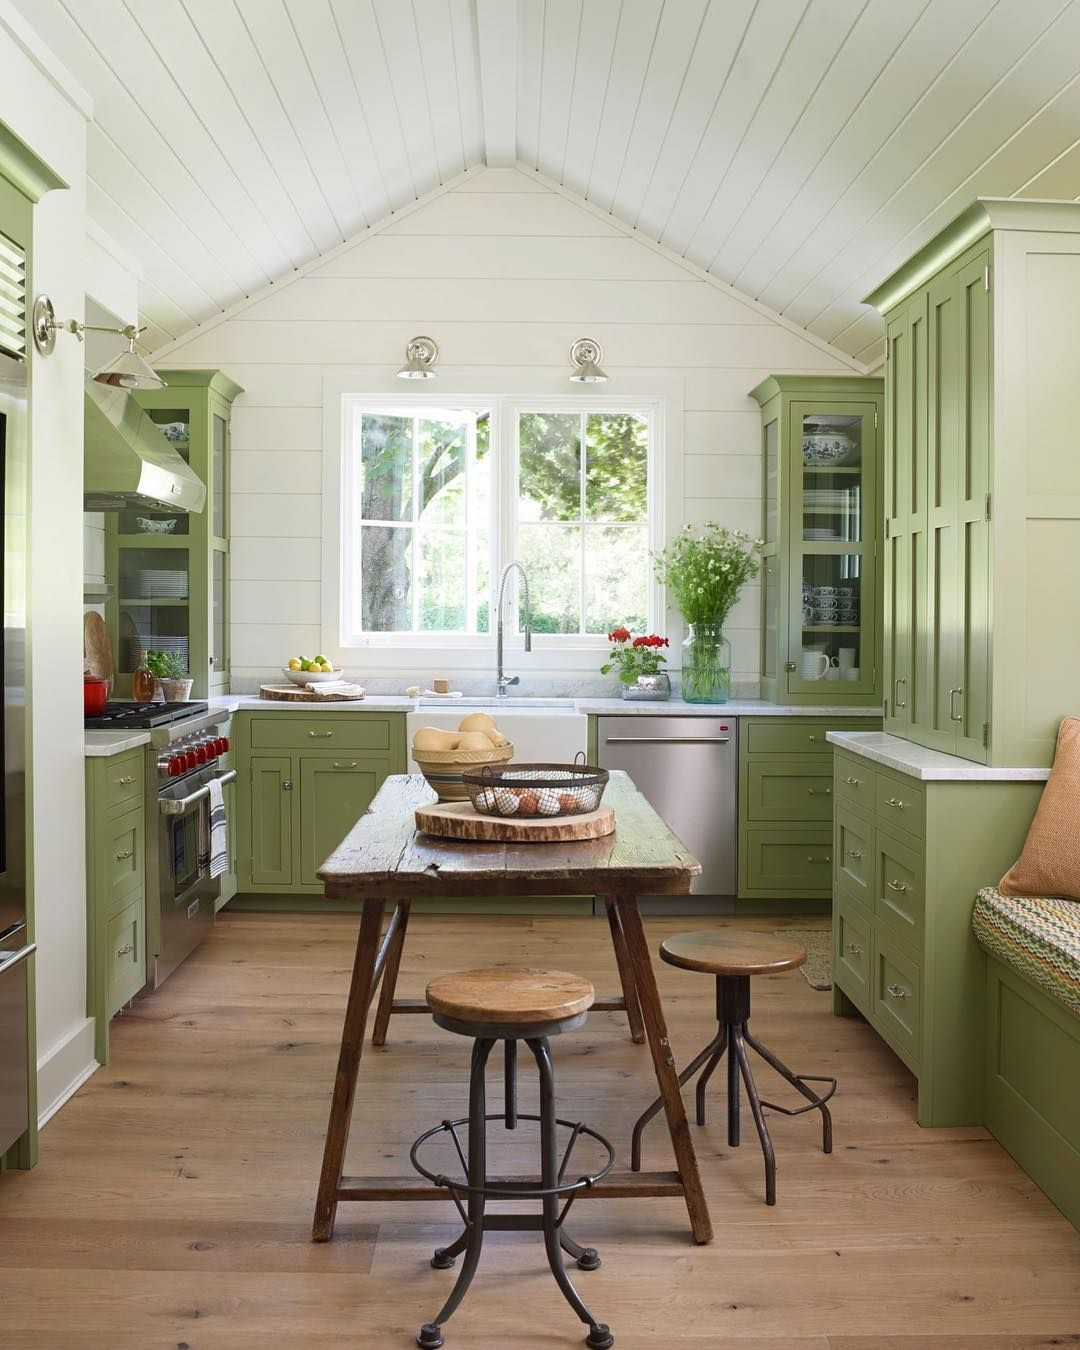 White Kitchen Yes Or No: Pin By Cherie Stone On I'm In The Kitchen!